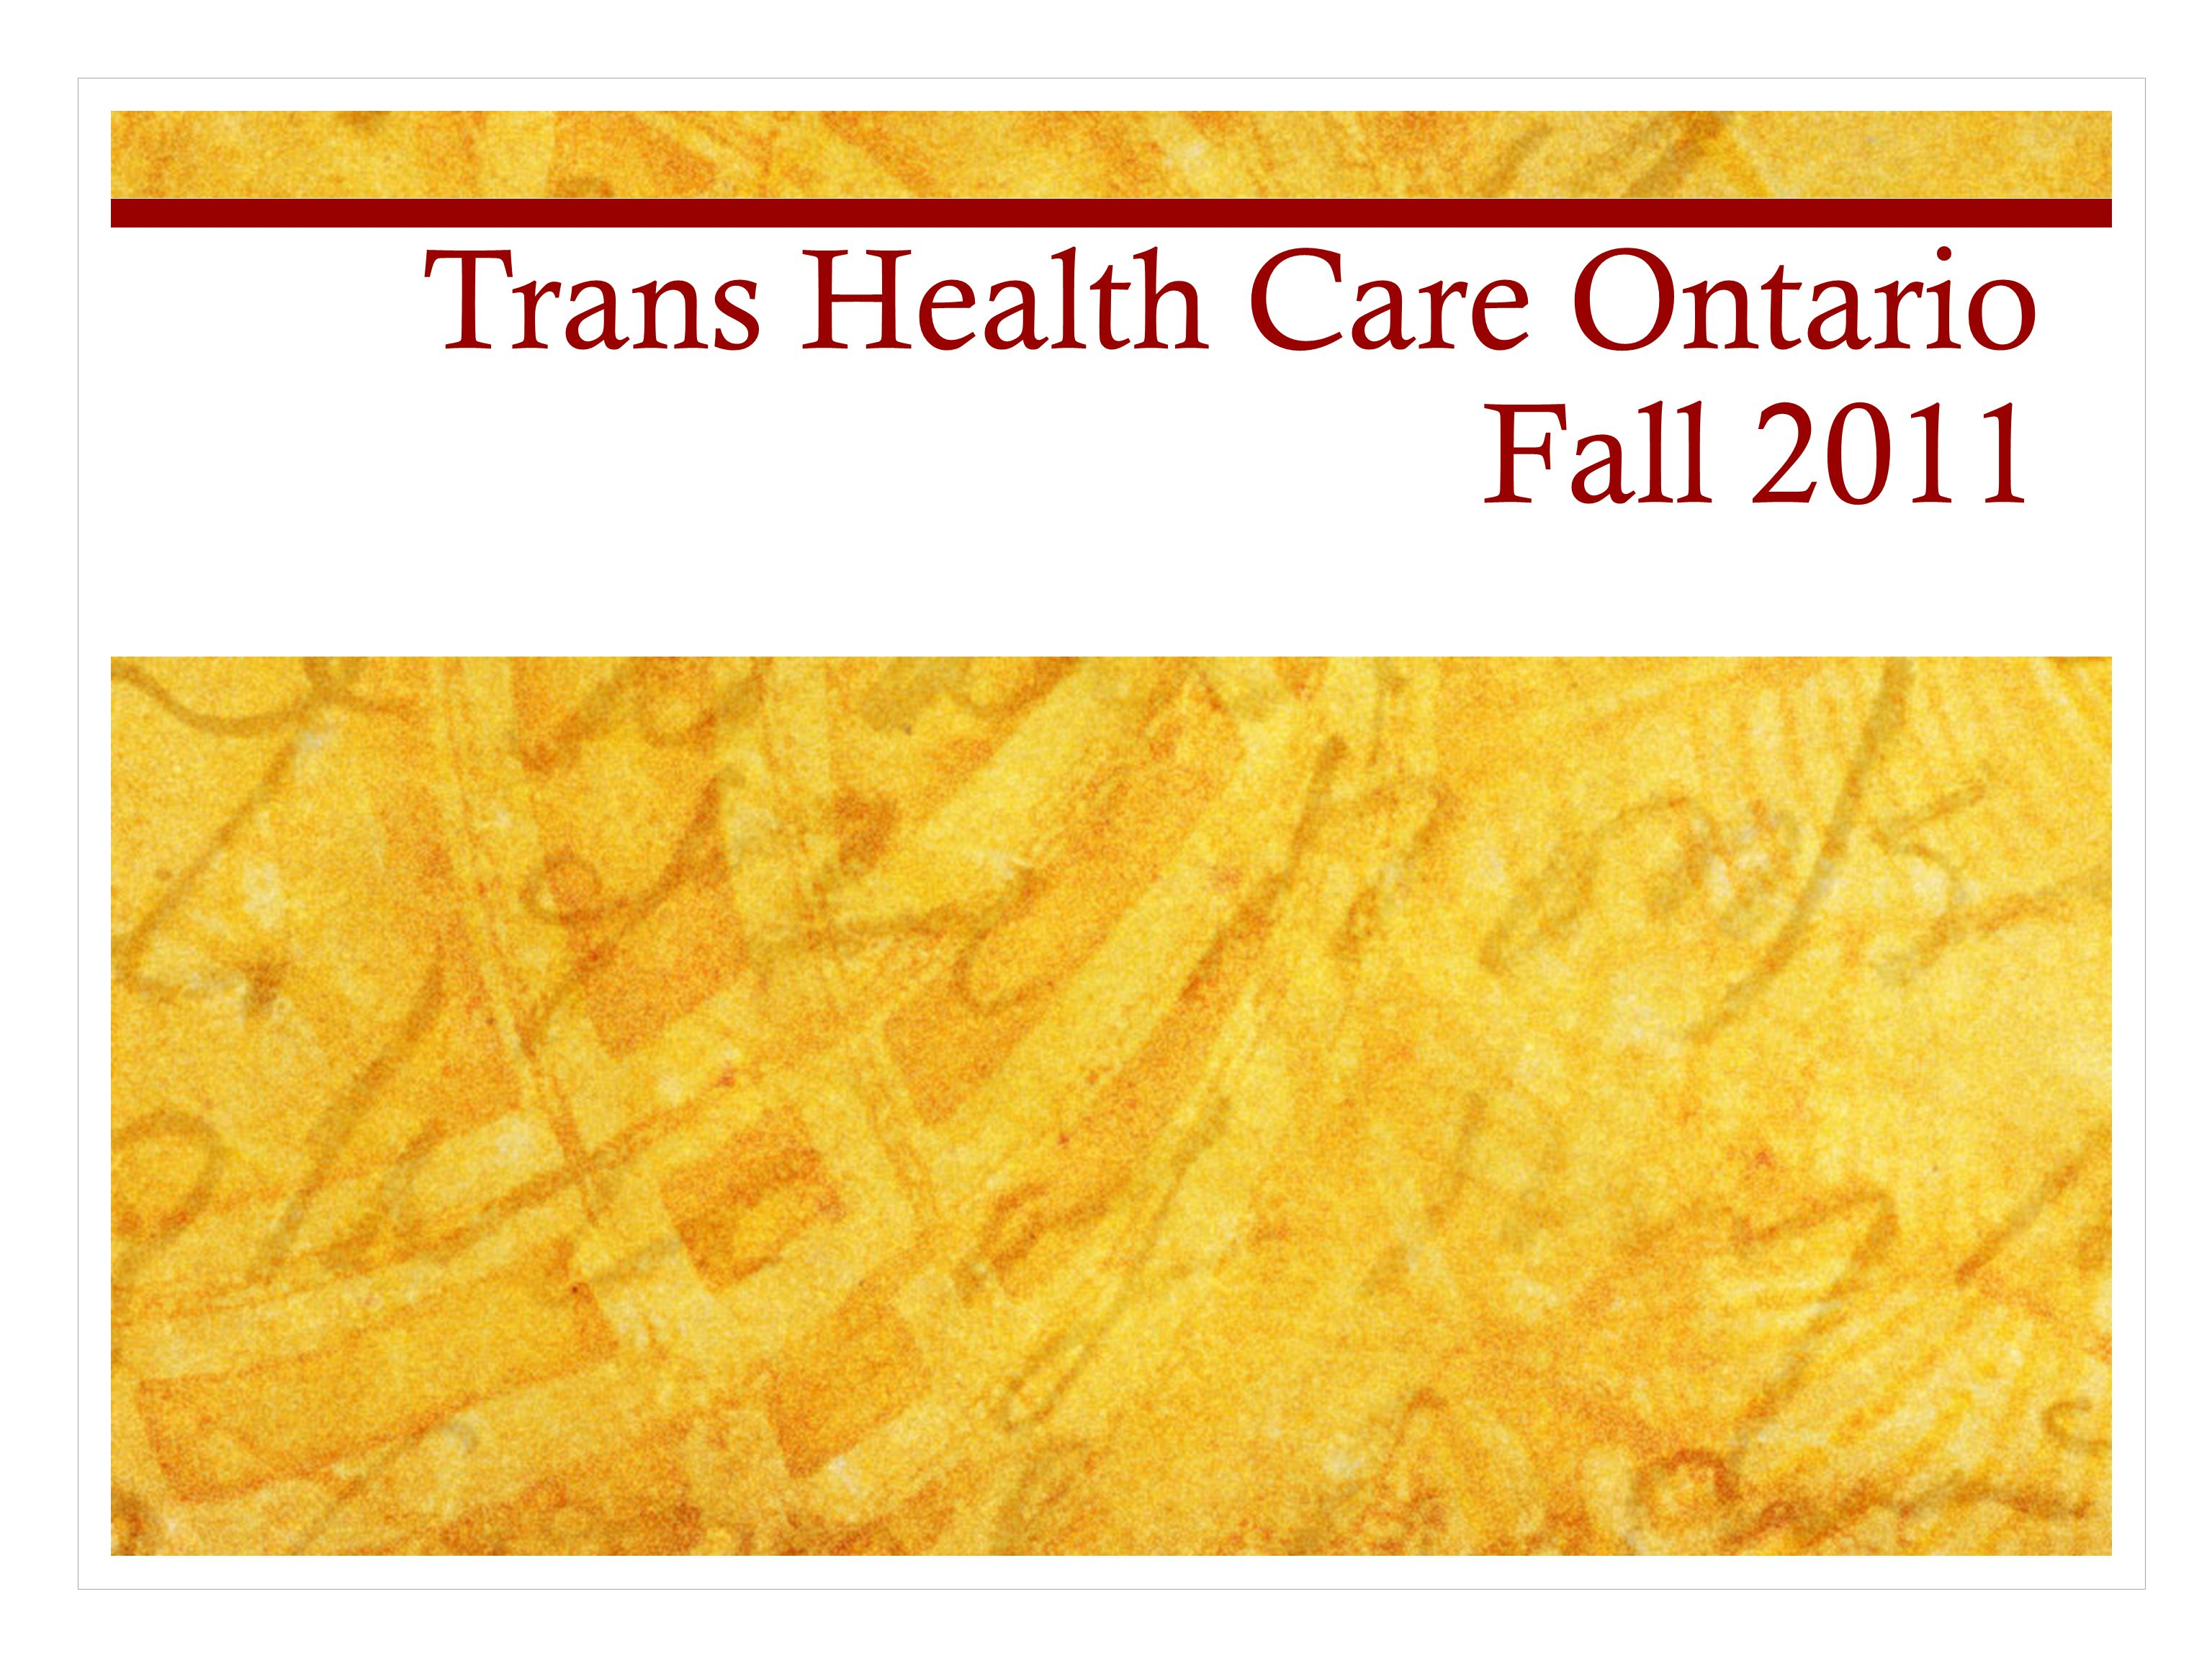 Trans Health Care Ontario Fall 2011